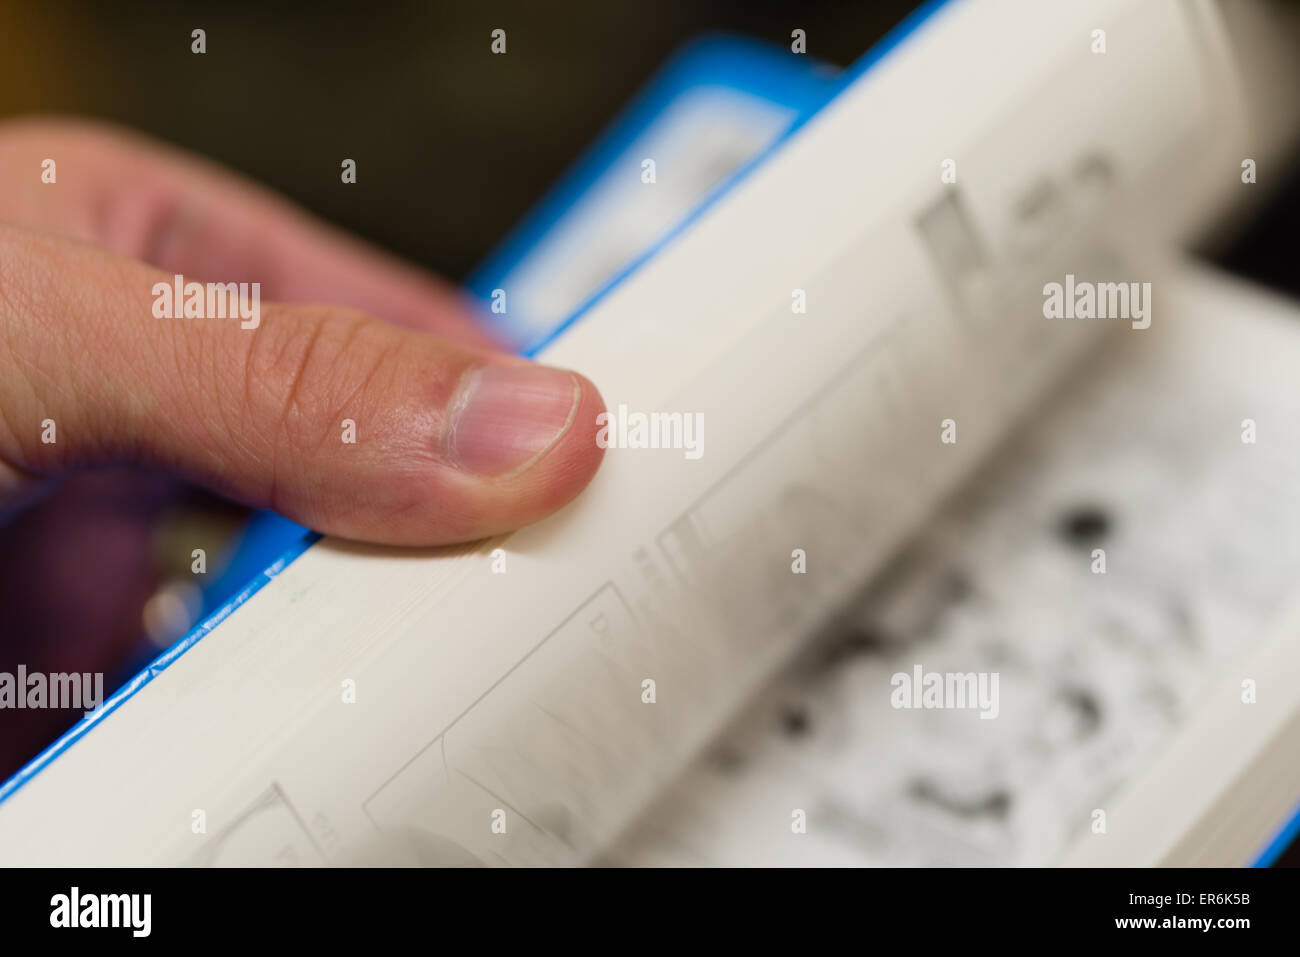 A close up of a hand flipping through the pages of a paperback book. - Stock Image